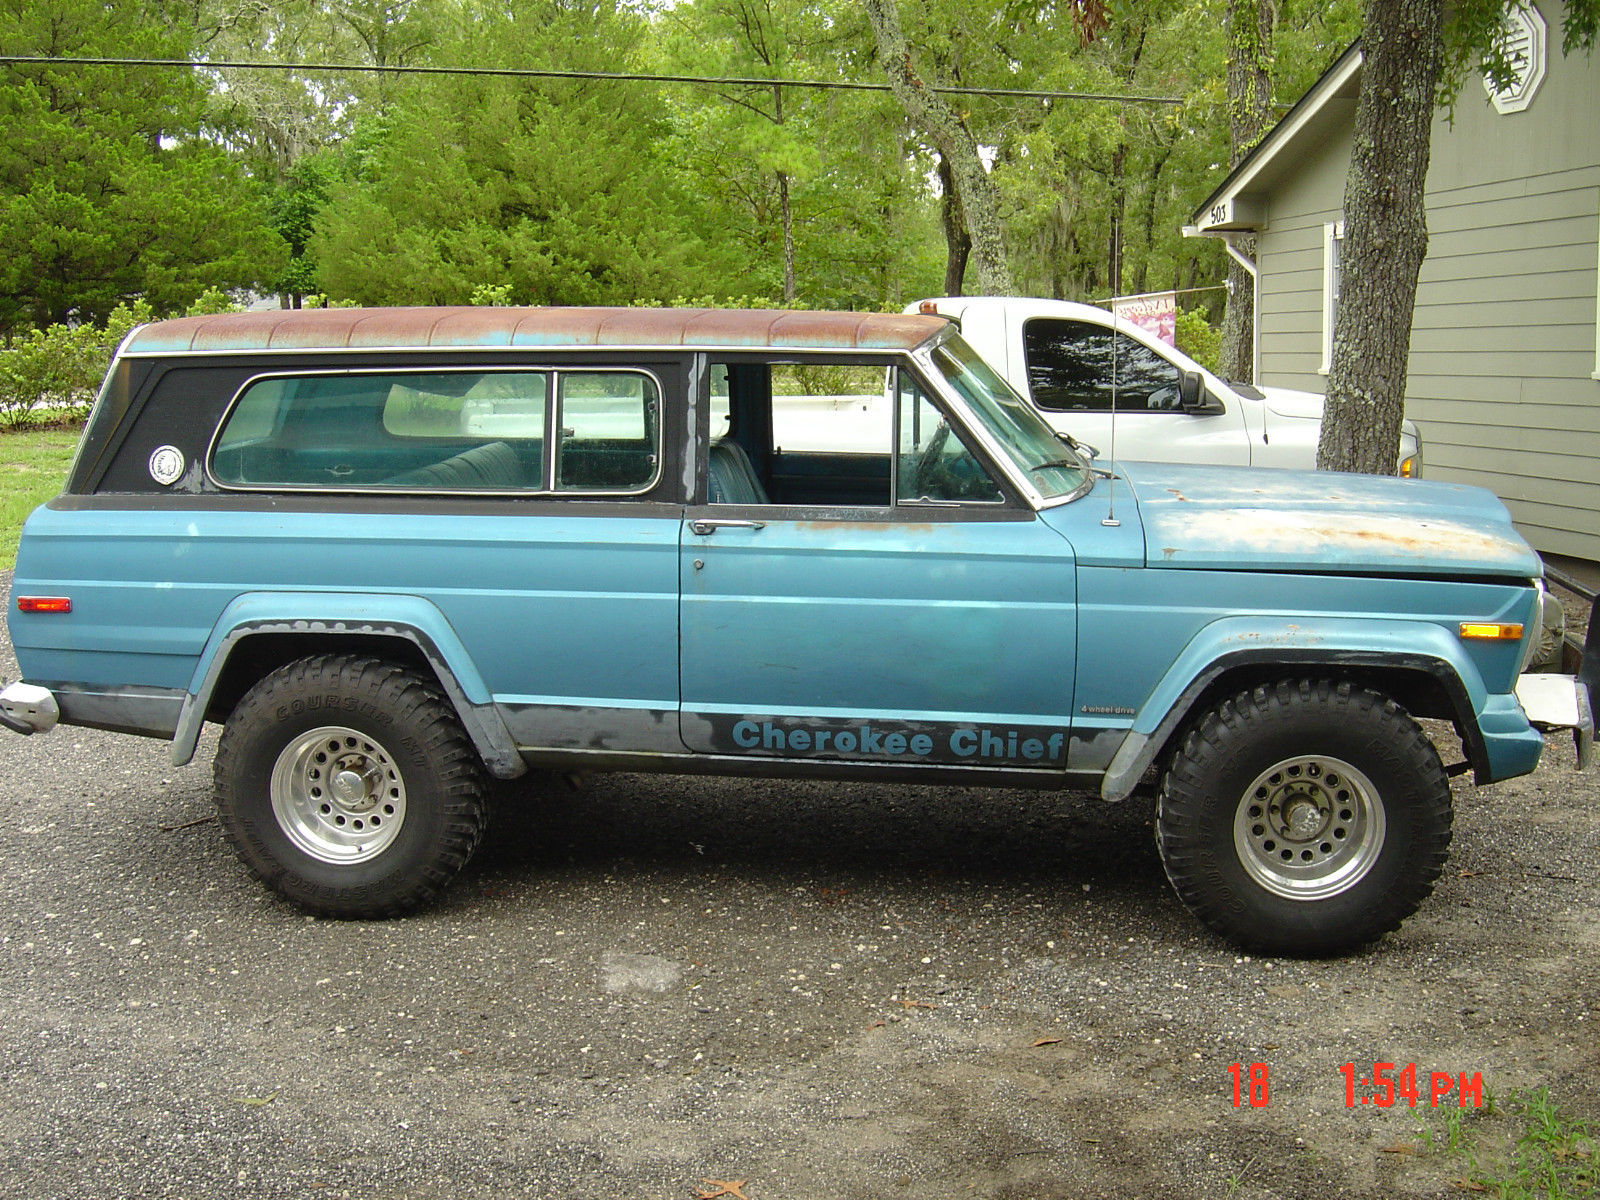 1976 jeep cherokee s sport utility 2 door 6 6l classic jeep cherokee 1976 for sale. Black Bedroom Furniture Sets. Home Design Ideas